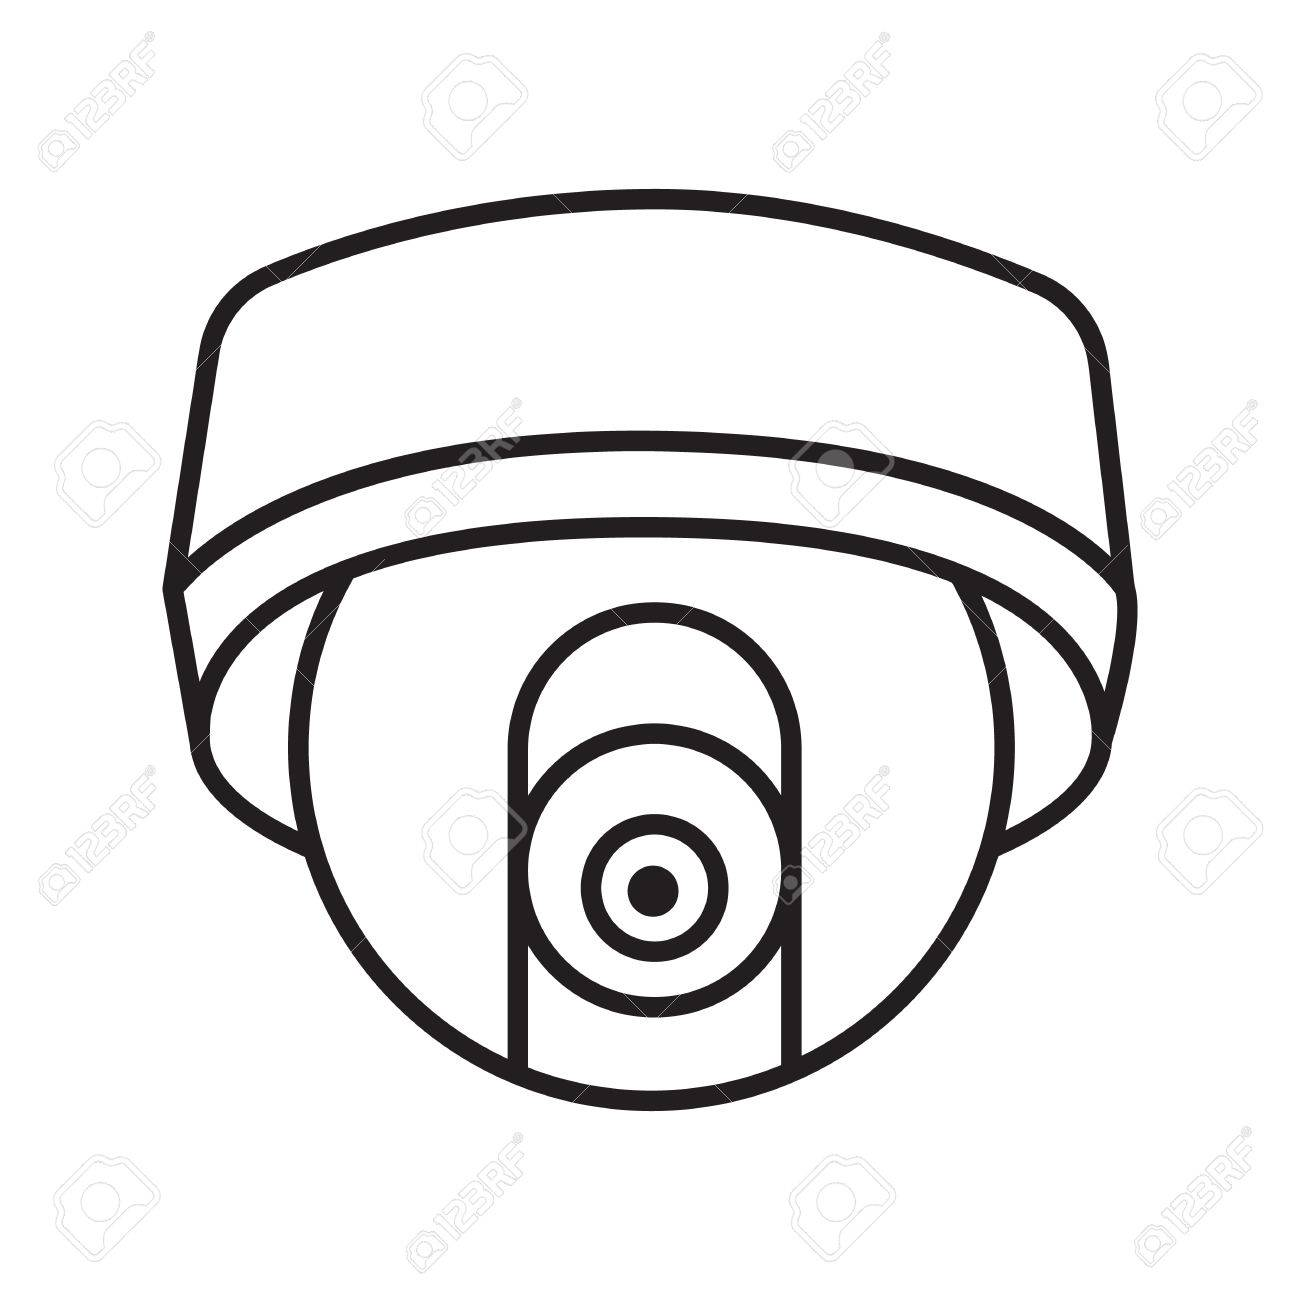 Cctv Camera Drawing At Getdrawings